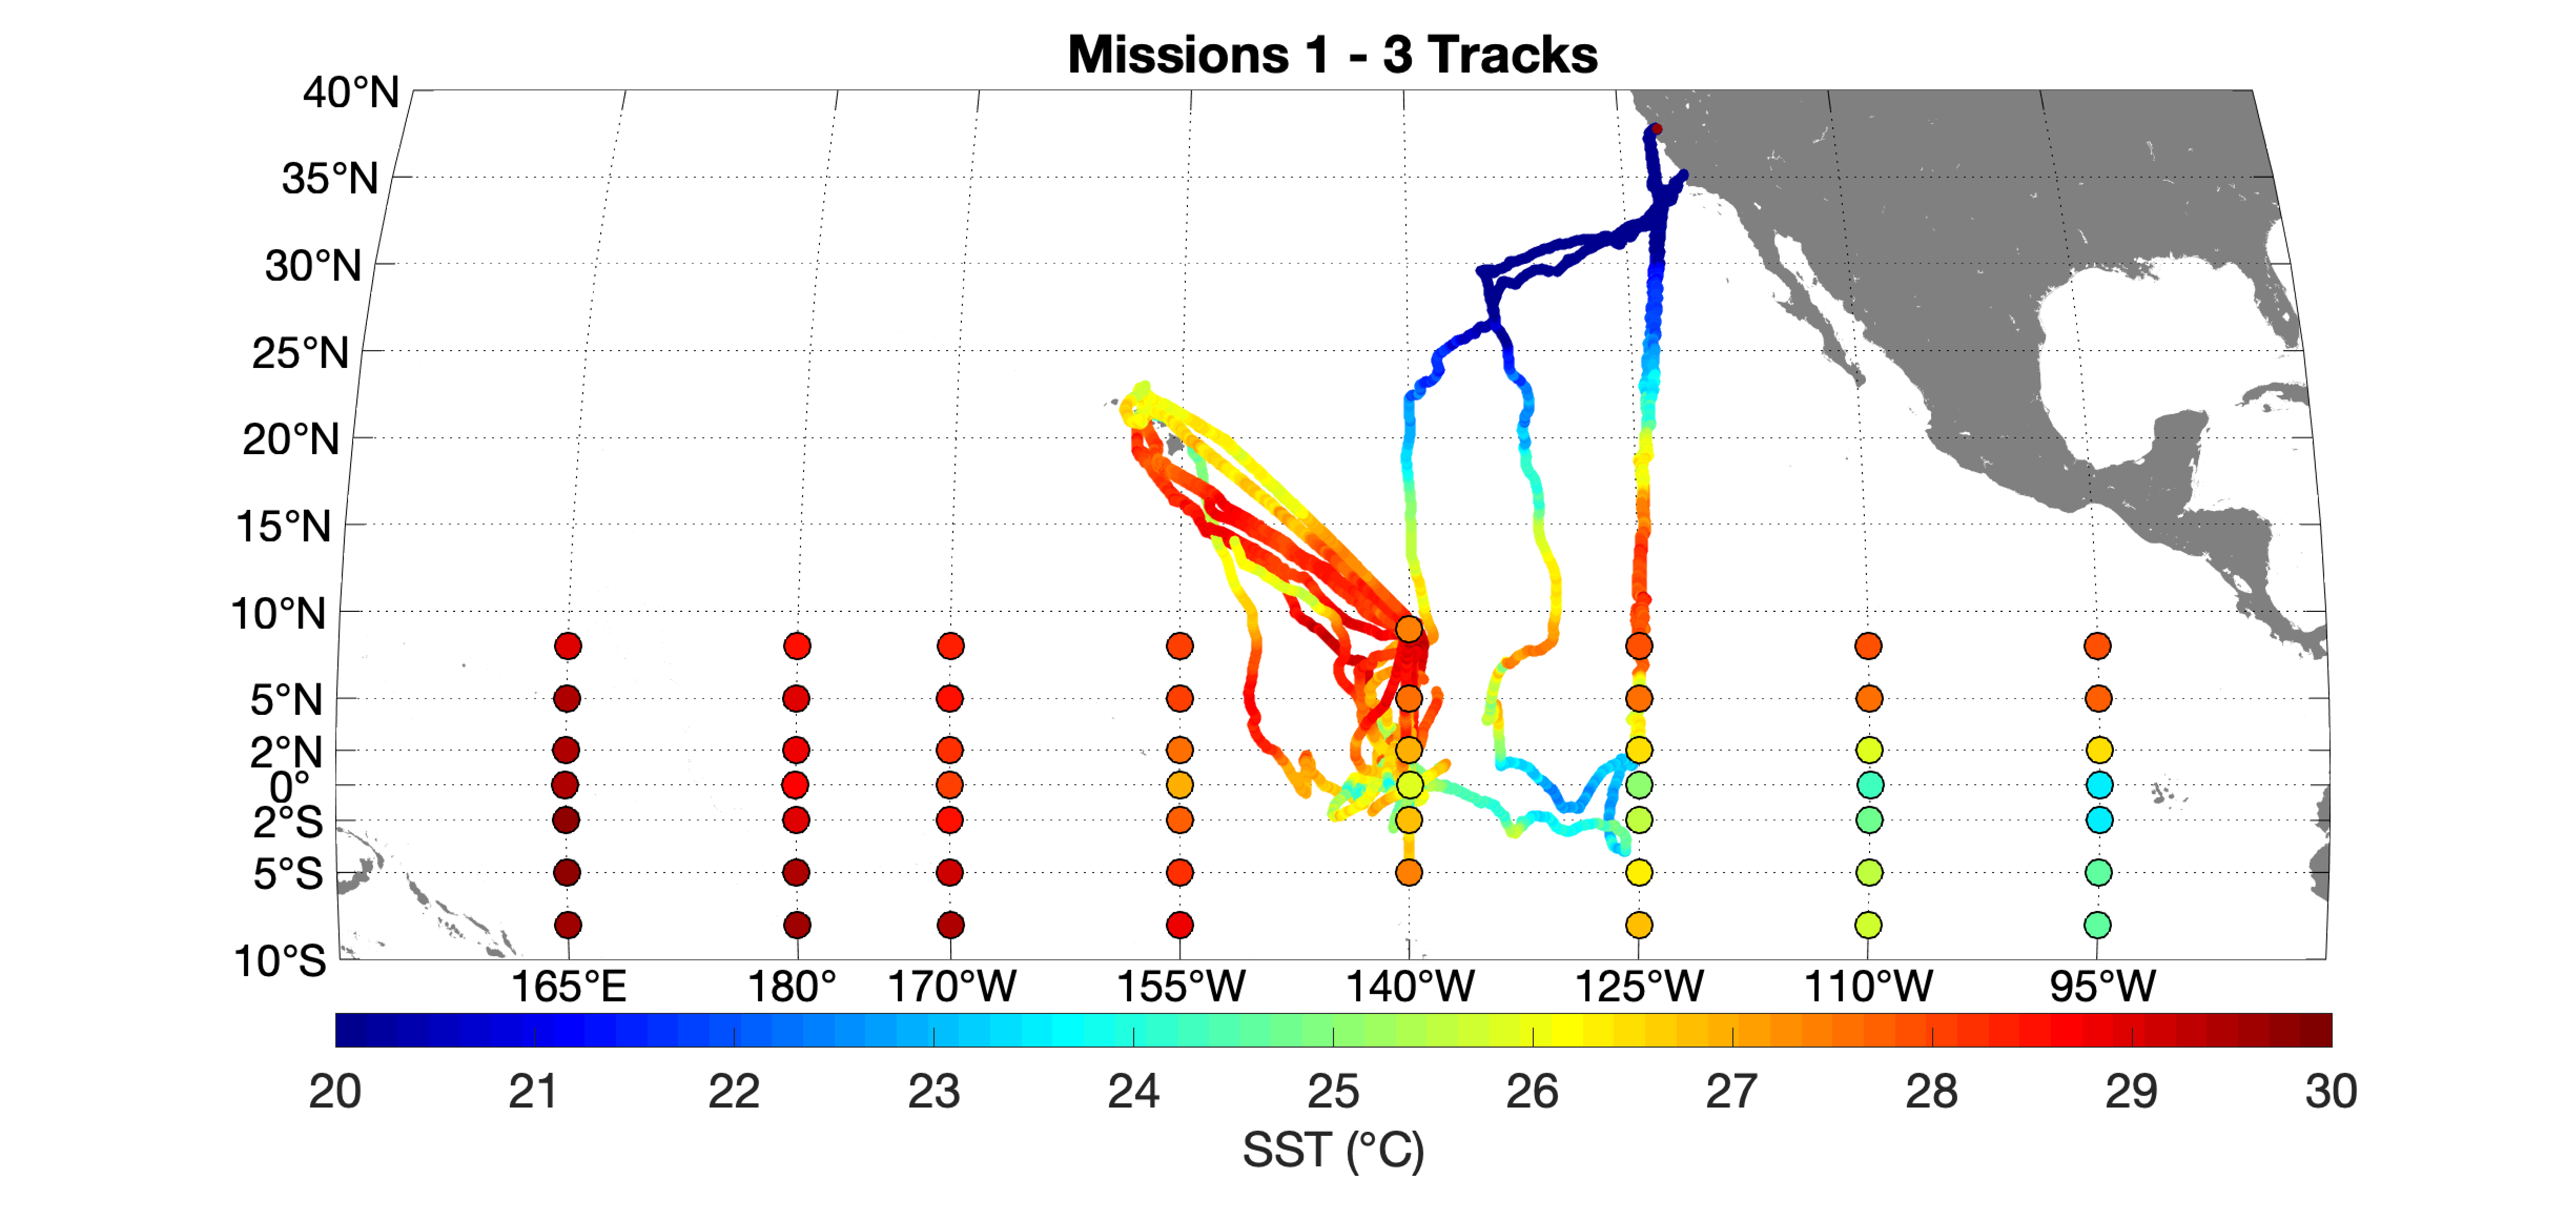 Missions 1 - 3 Saildrone tracks and TAO buoys throughout the tropical Pacific. The tracks are plotted as a function of 1-min mean SST, and the buoys are plotted as a function of their 2003 - 2019 climatological-mean SST.